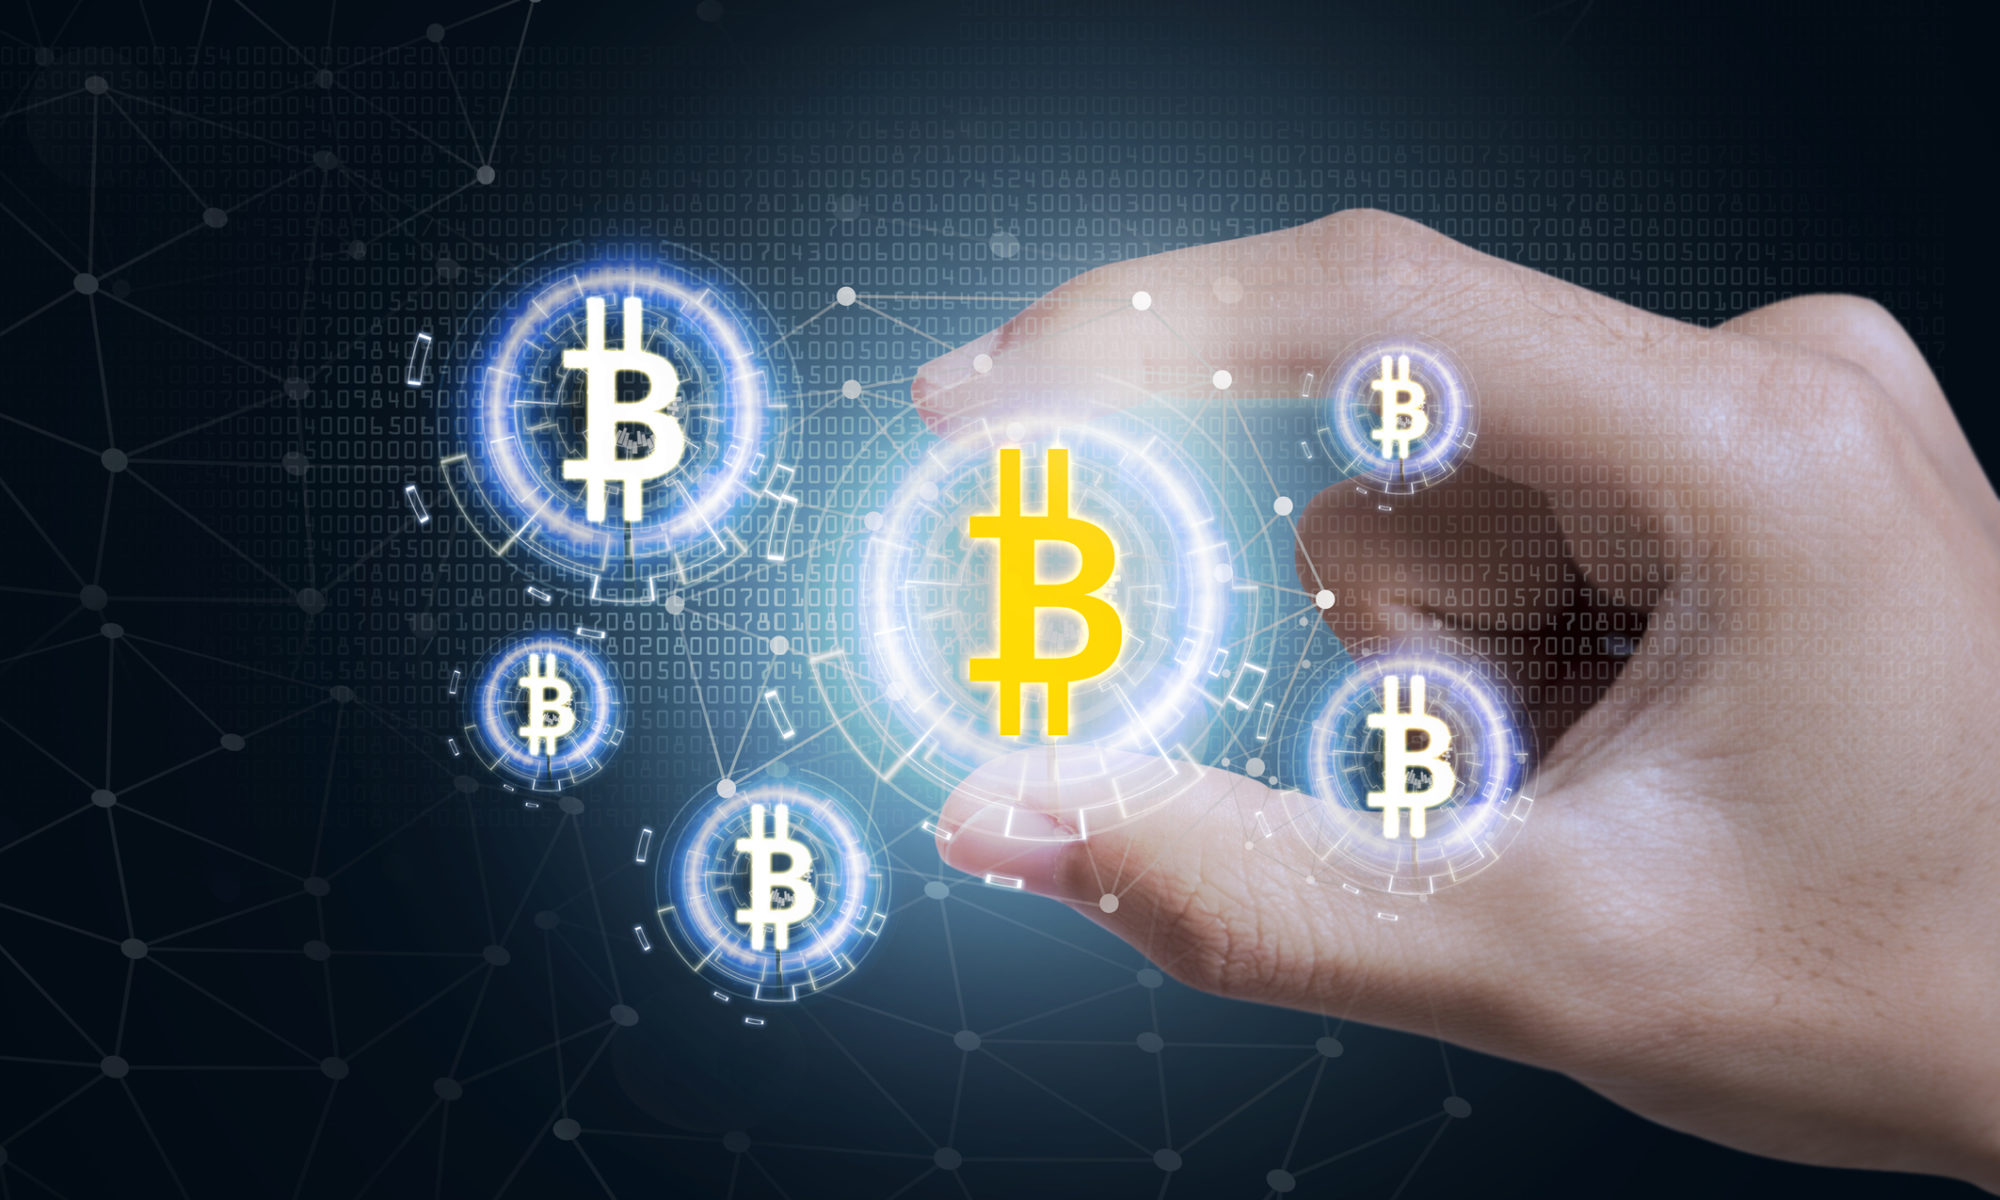 Bitcoins are held in digital wallets.